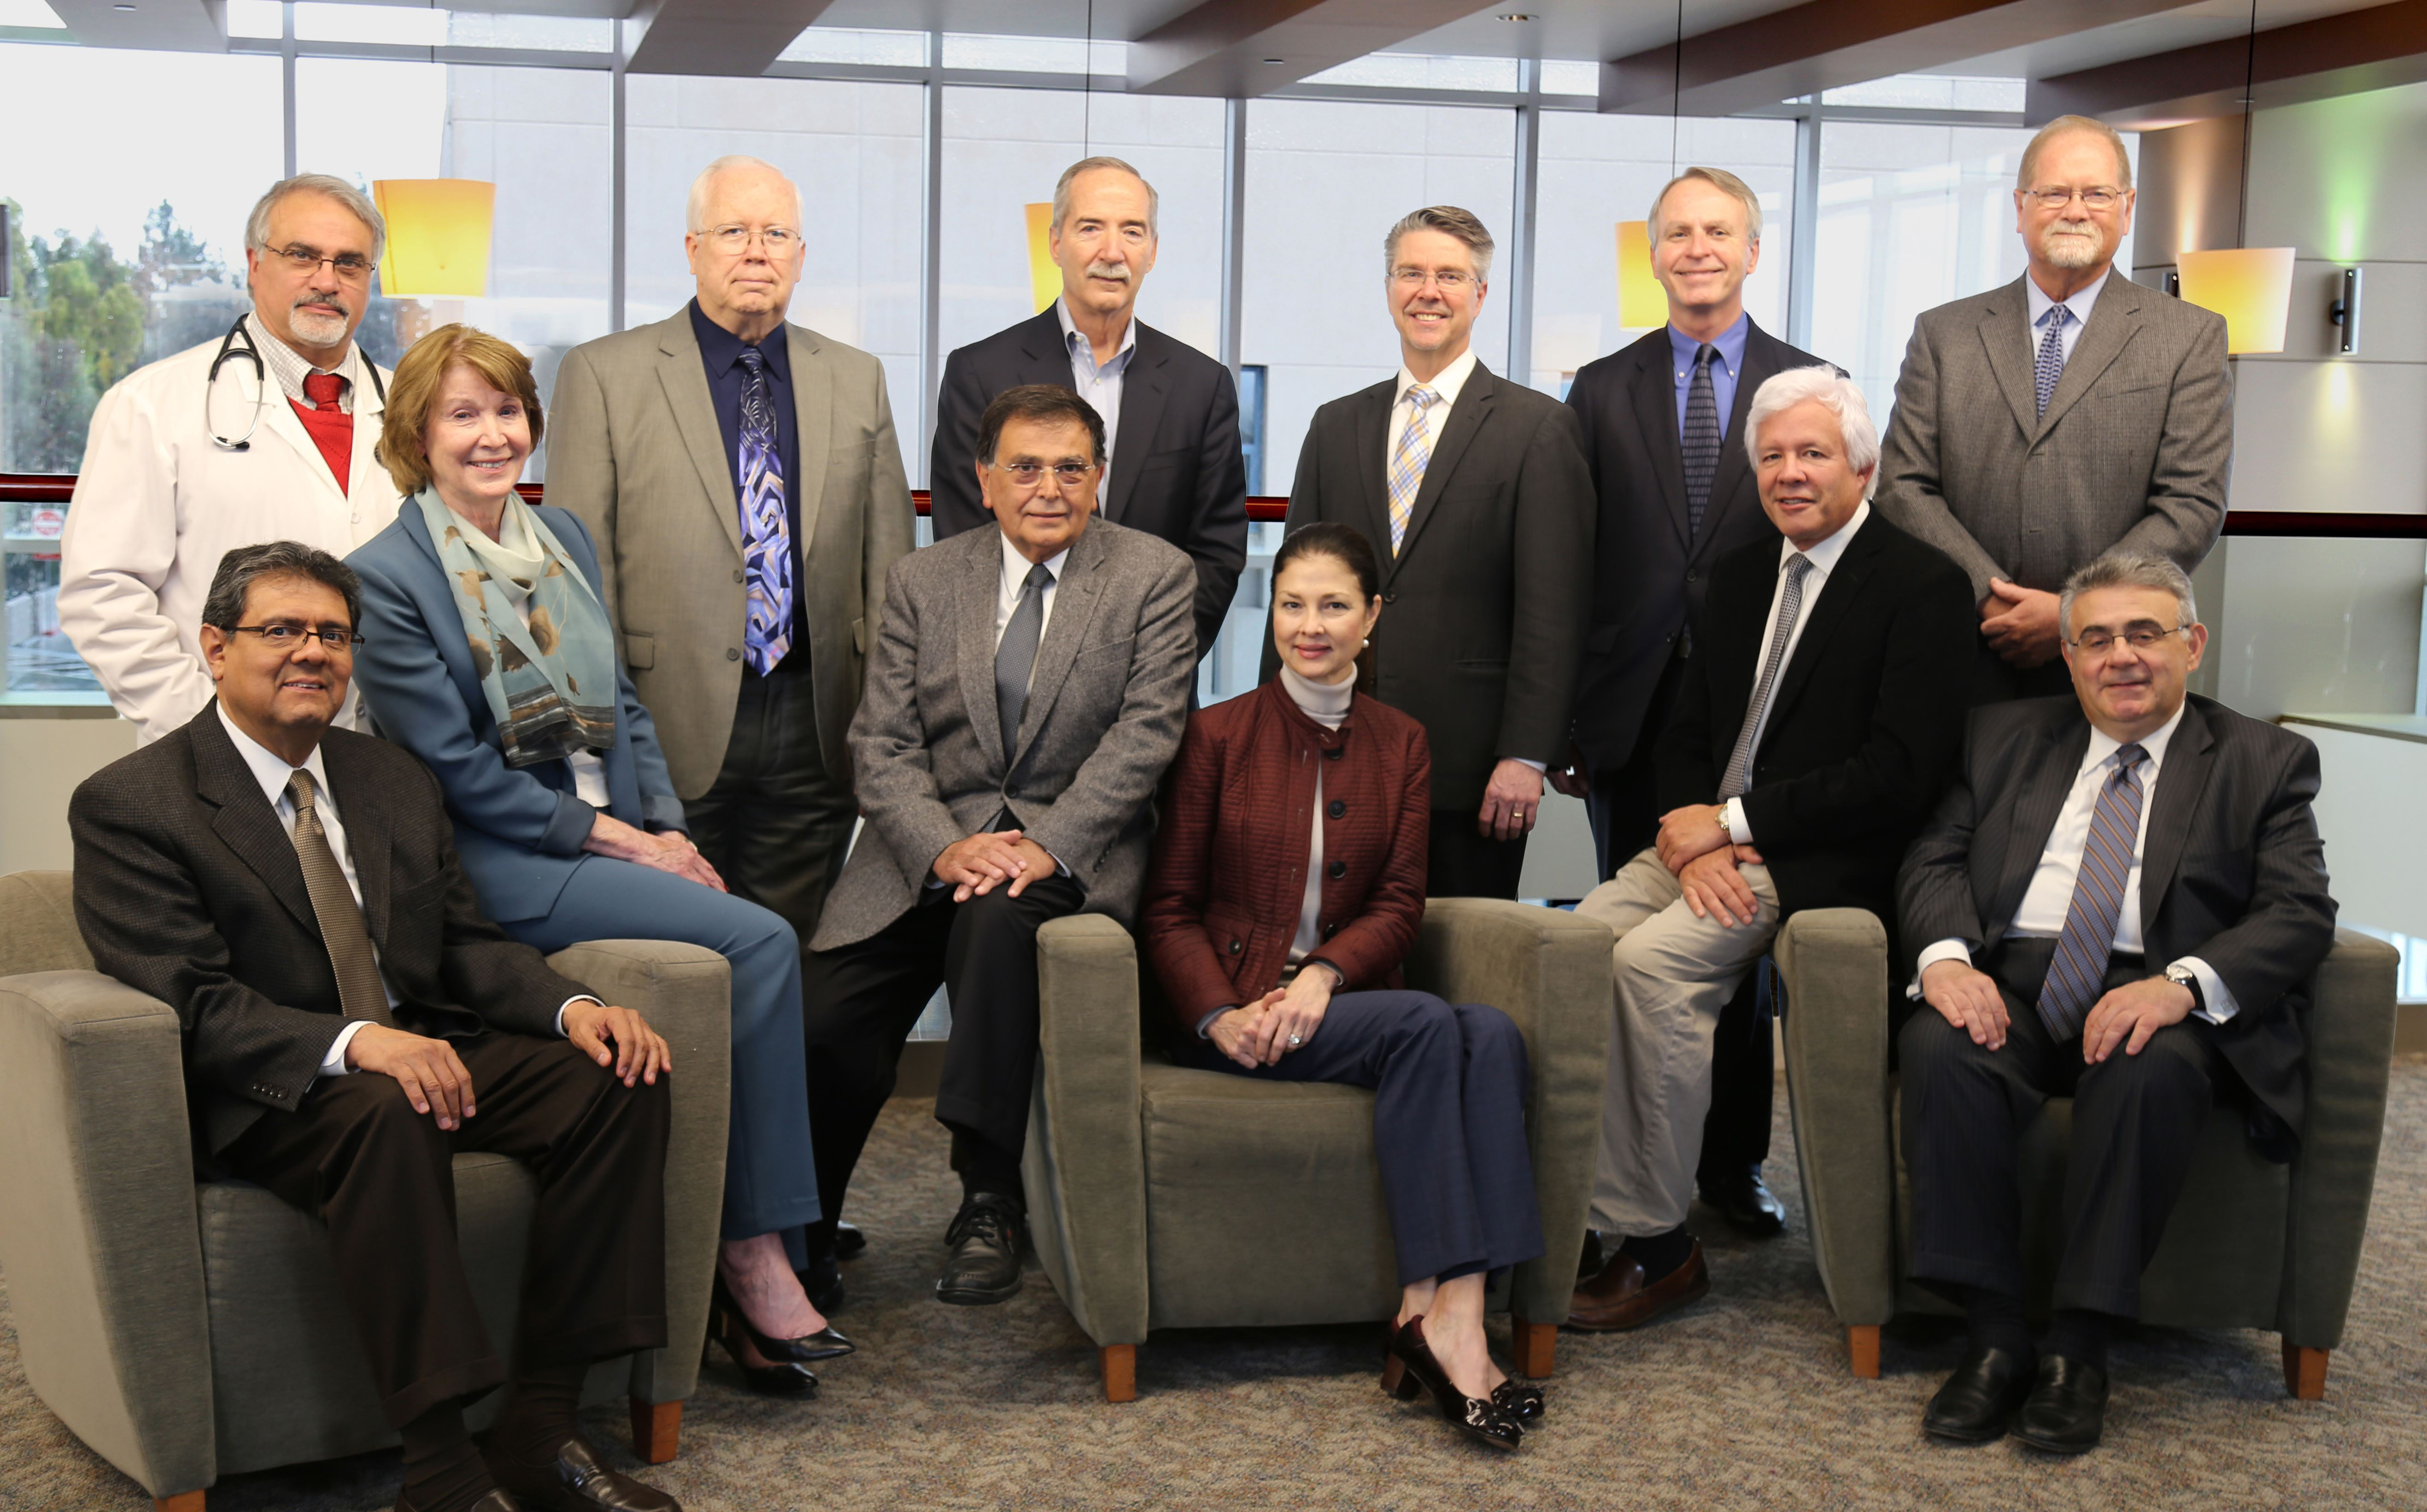 Governing Board - Minus 3 members